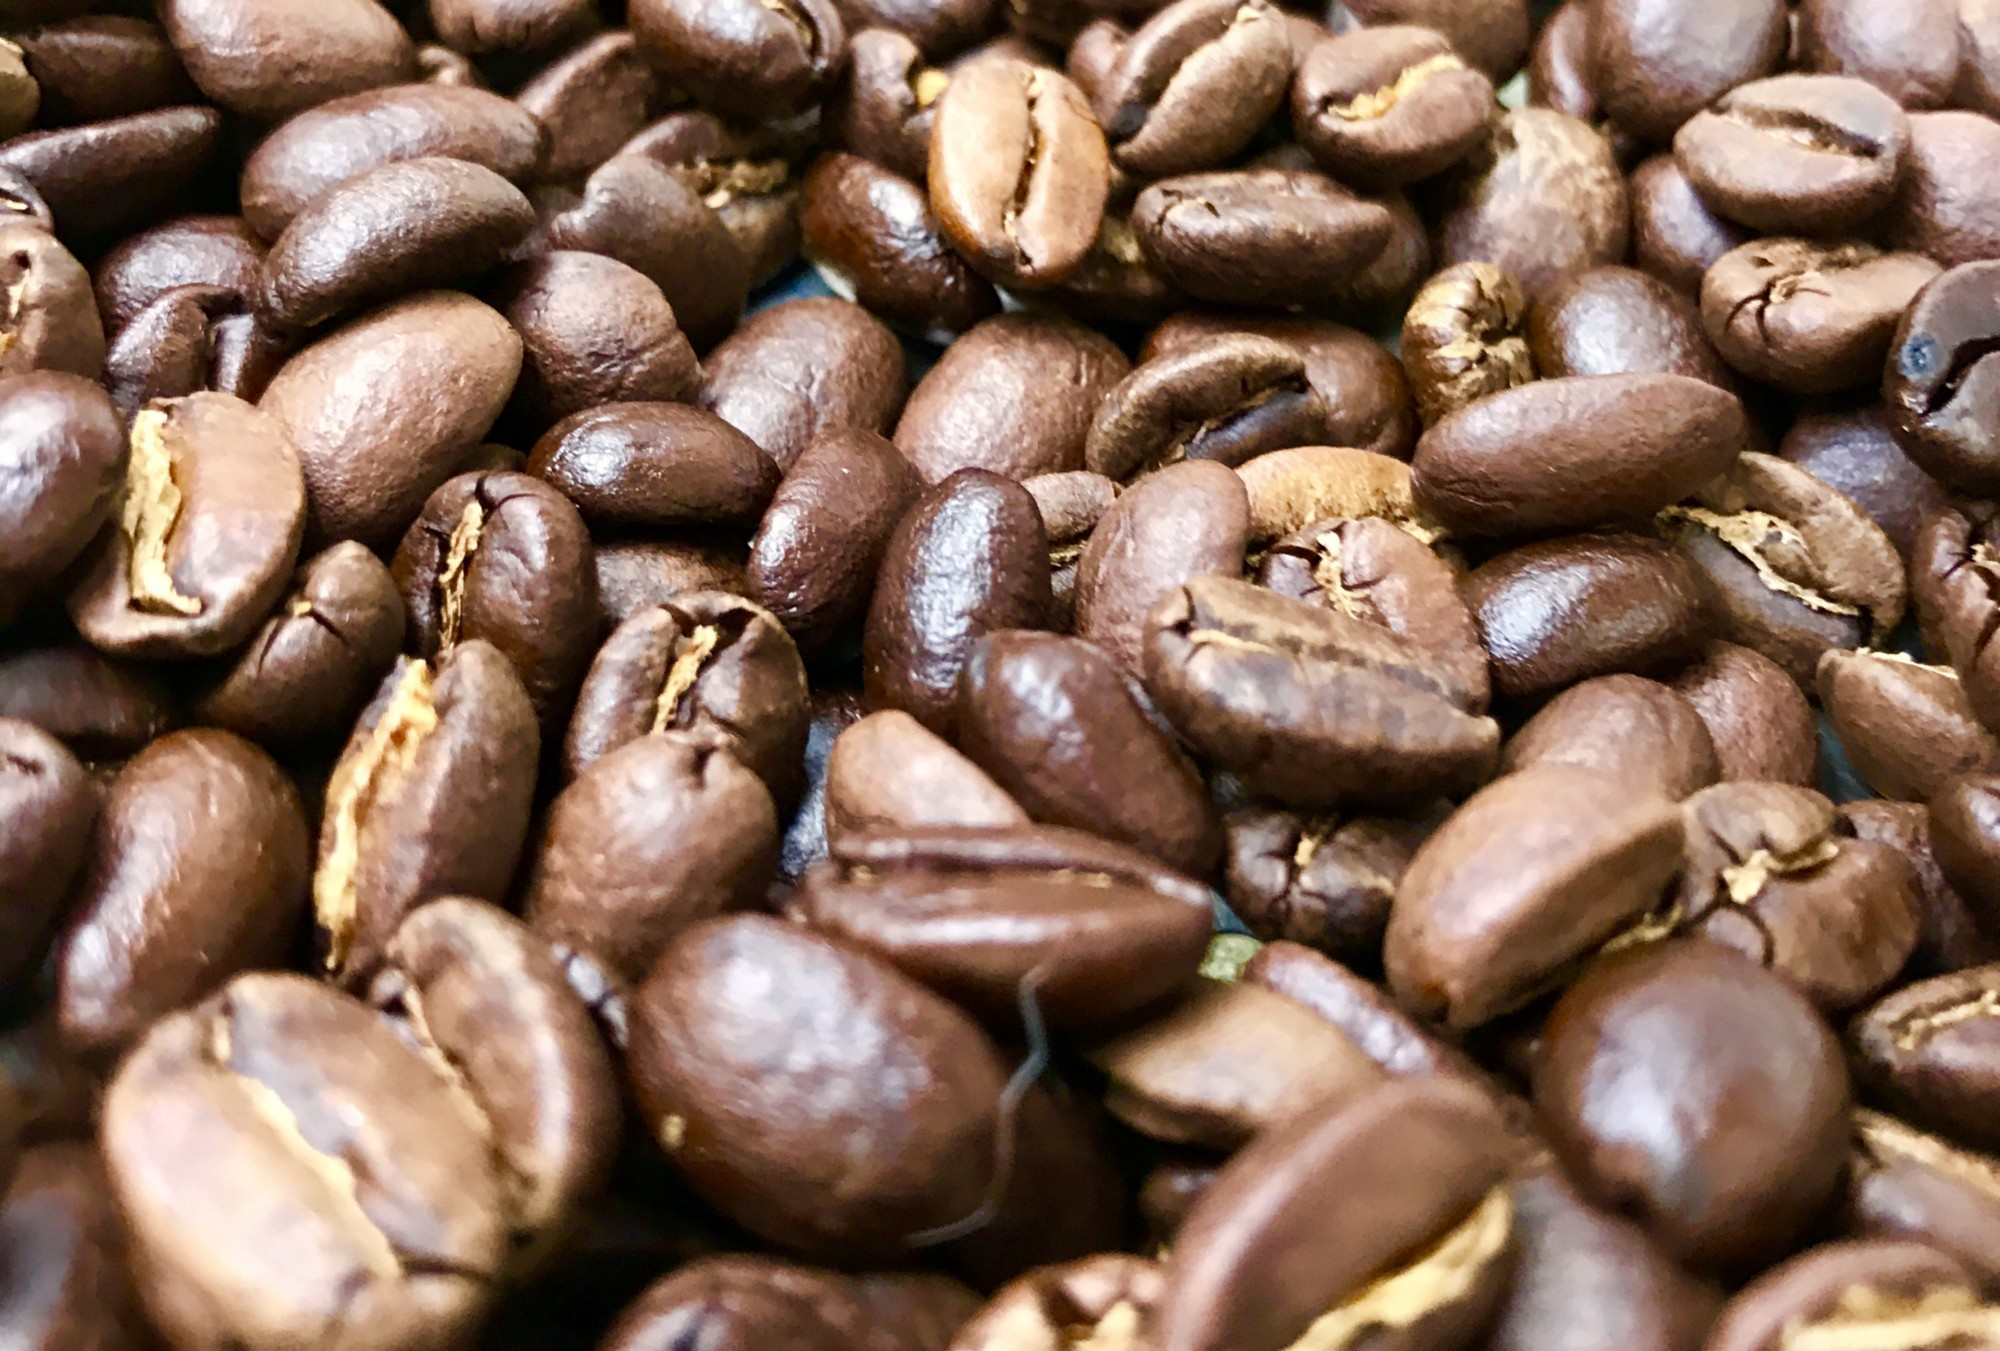 Freshly roasted coffee beans from central Mexico.